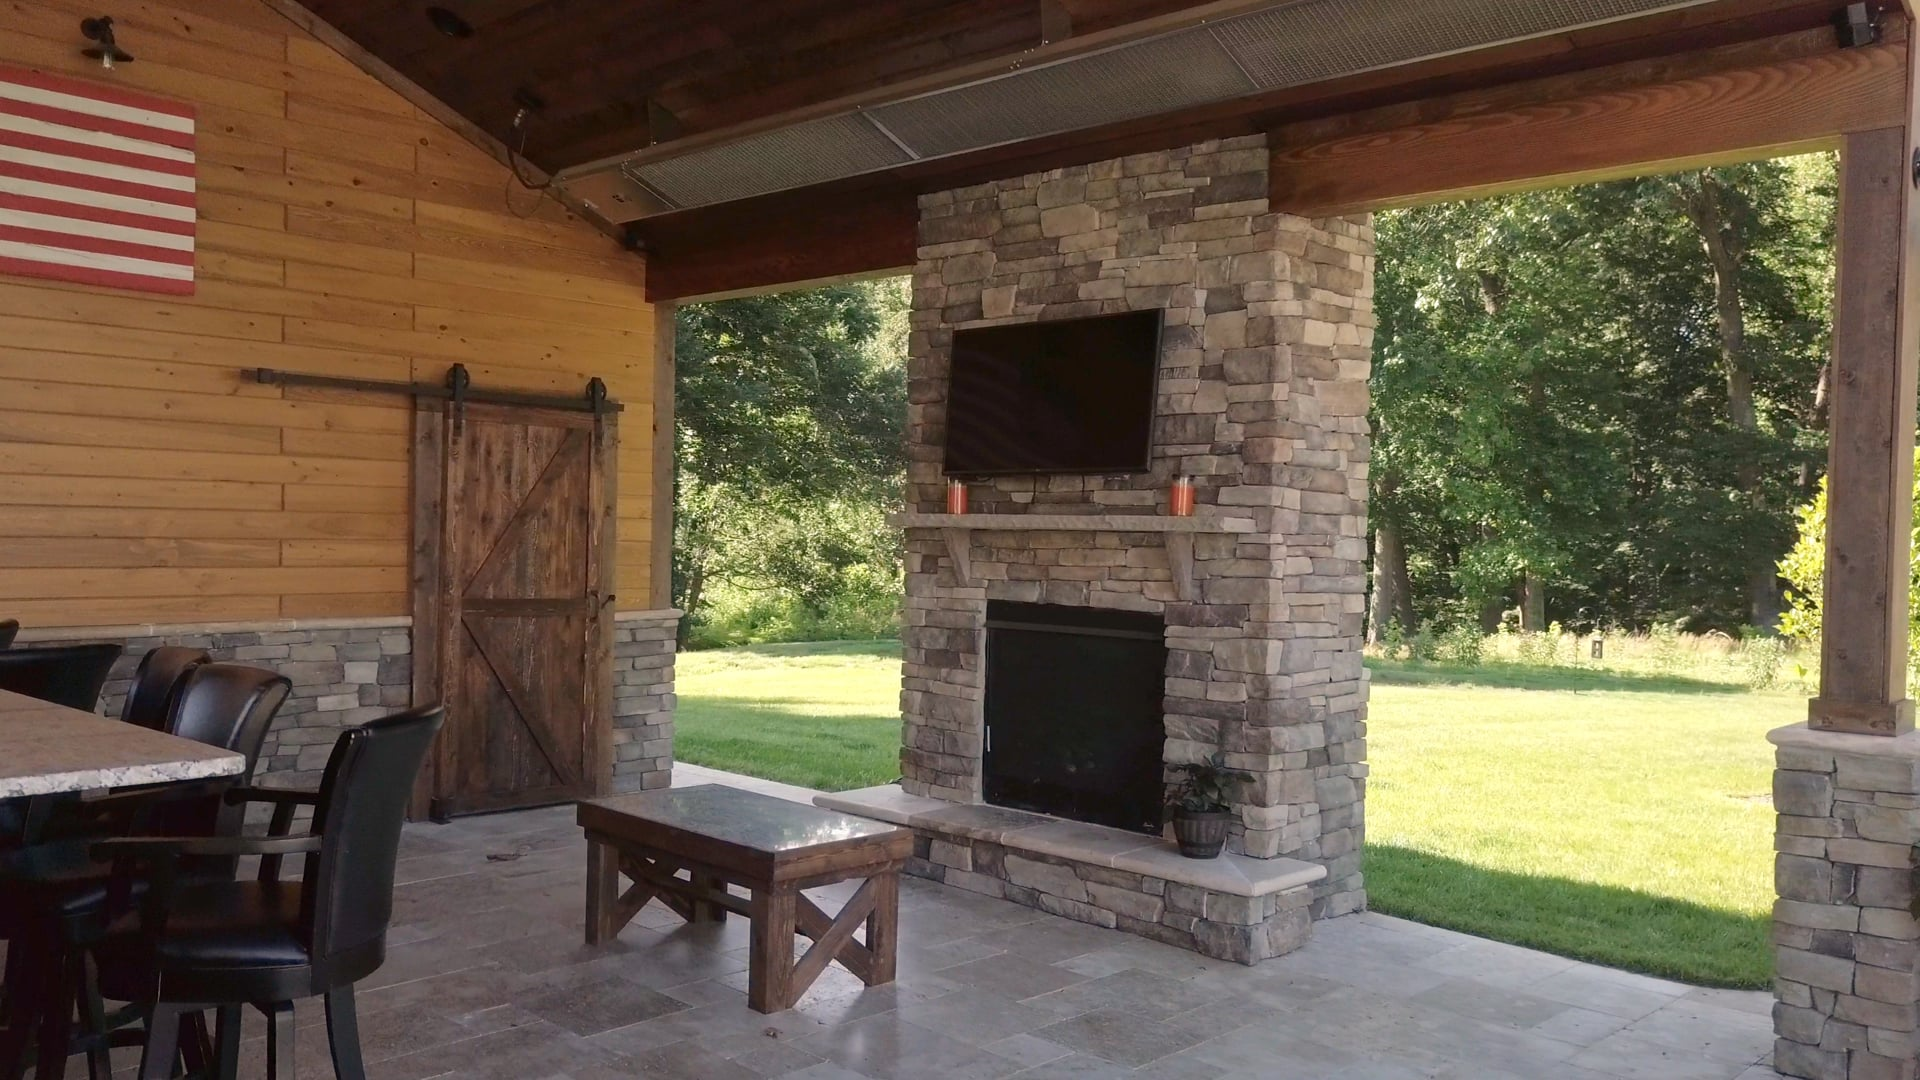 Golf Club Drive Pool & Covered Patio by Nelkoff Pools